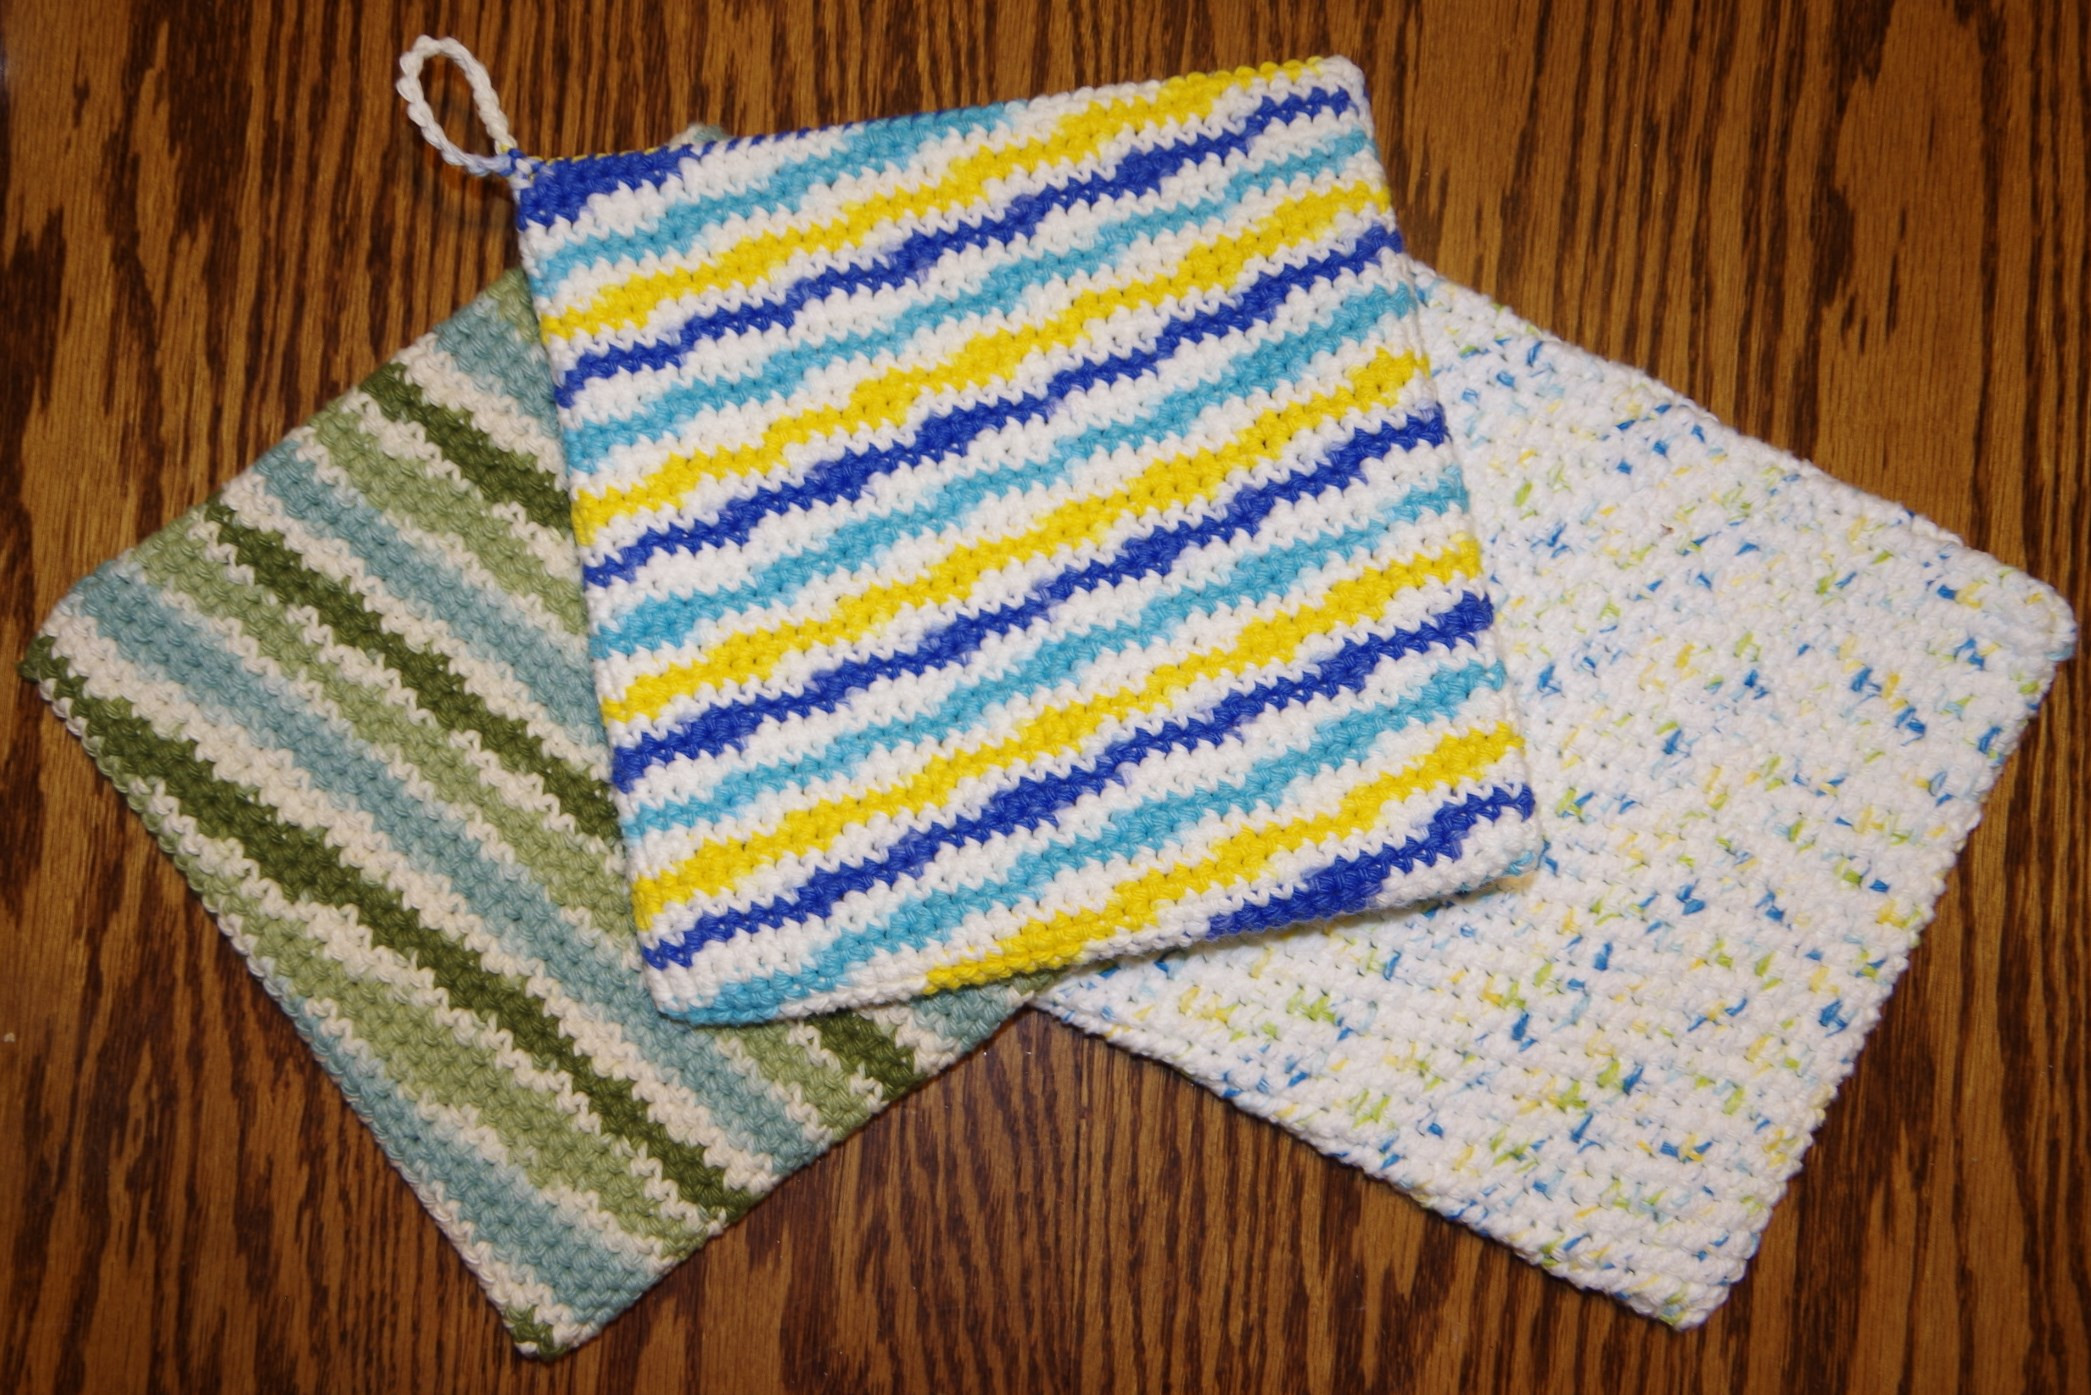 Free Crochet Hot Pad Patterns Unique Free Double Thick Potholder Crochet Pattern – Yay for Yarn Of Beautiful 48 Pics Free Crochet Hot Pad Patterns